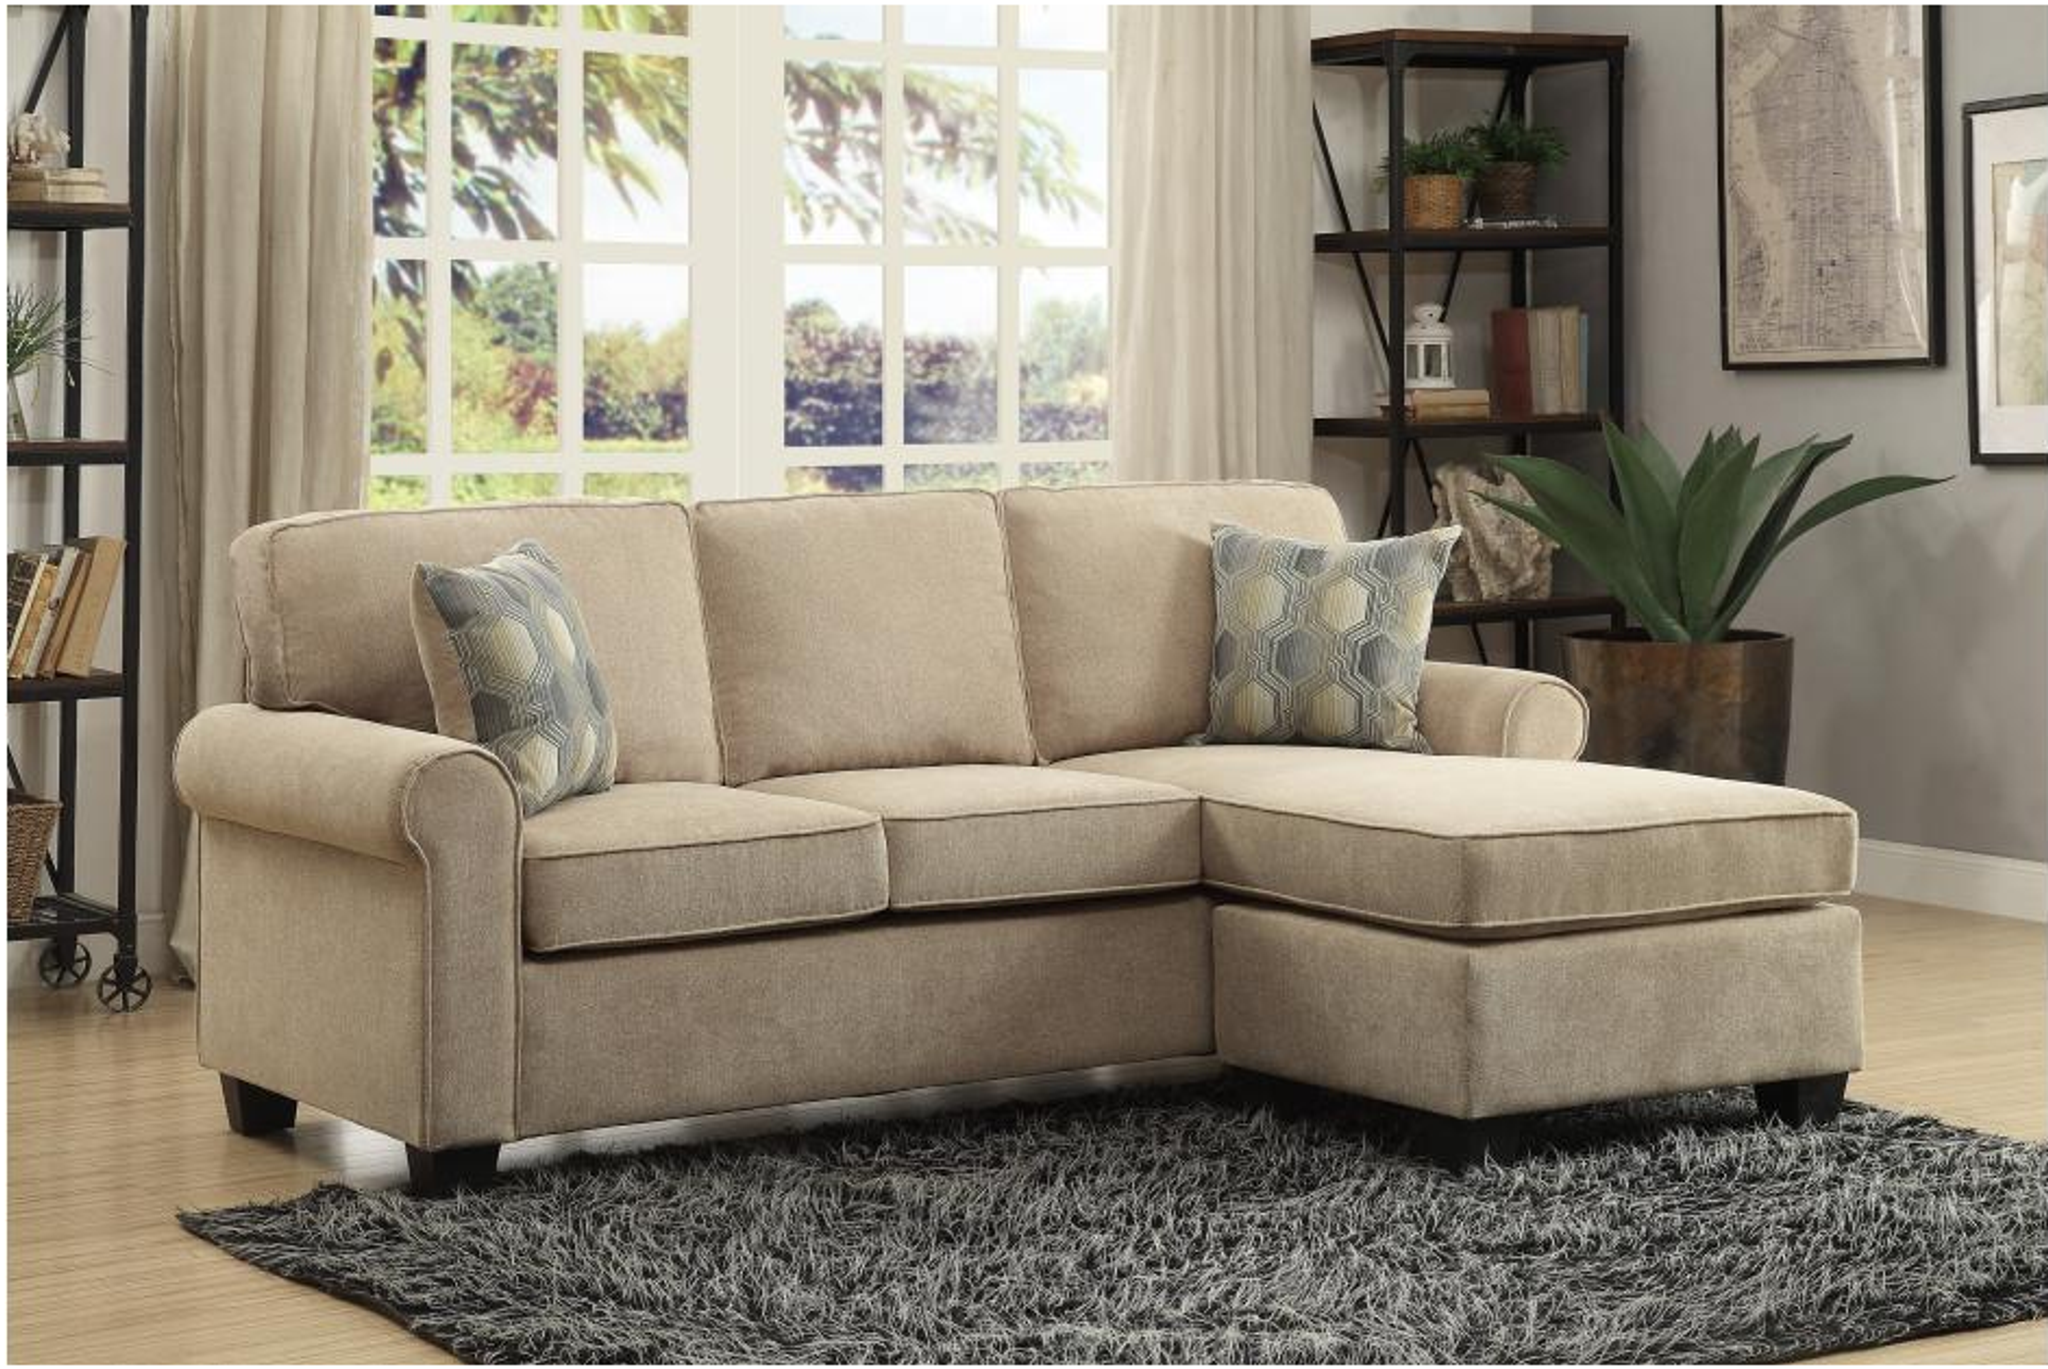 REVERSIBLE SOFA CHAISE CLUMBER COLLECTION SAND COLOR